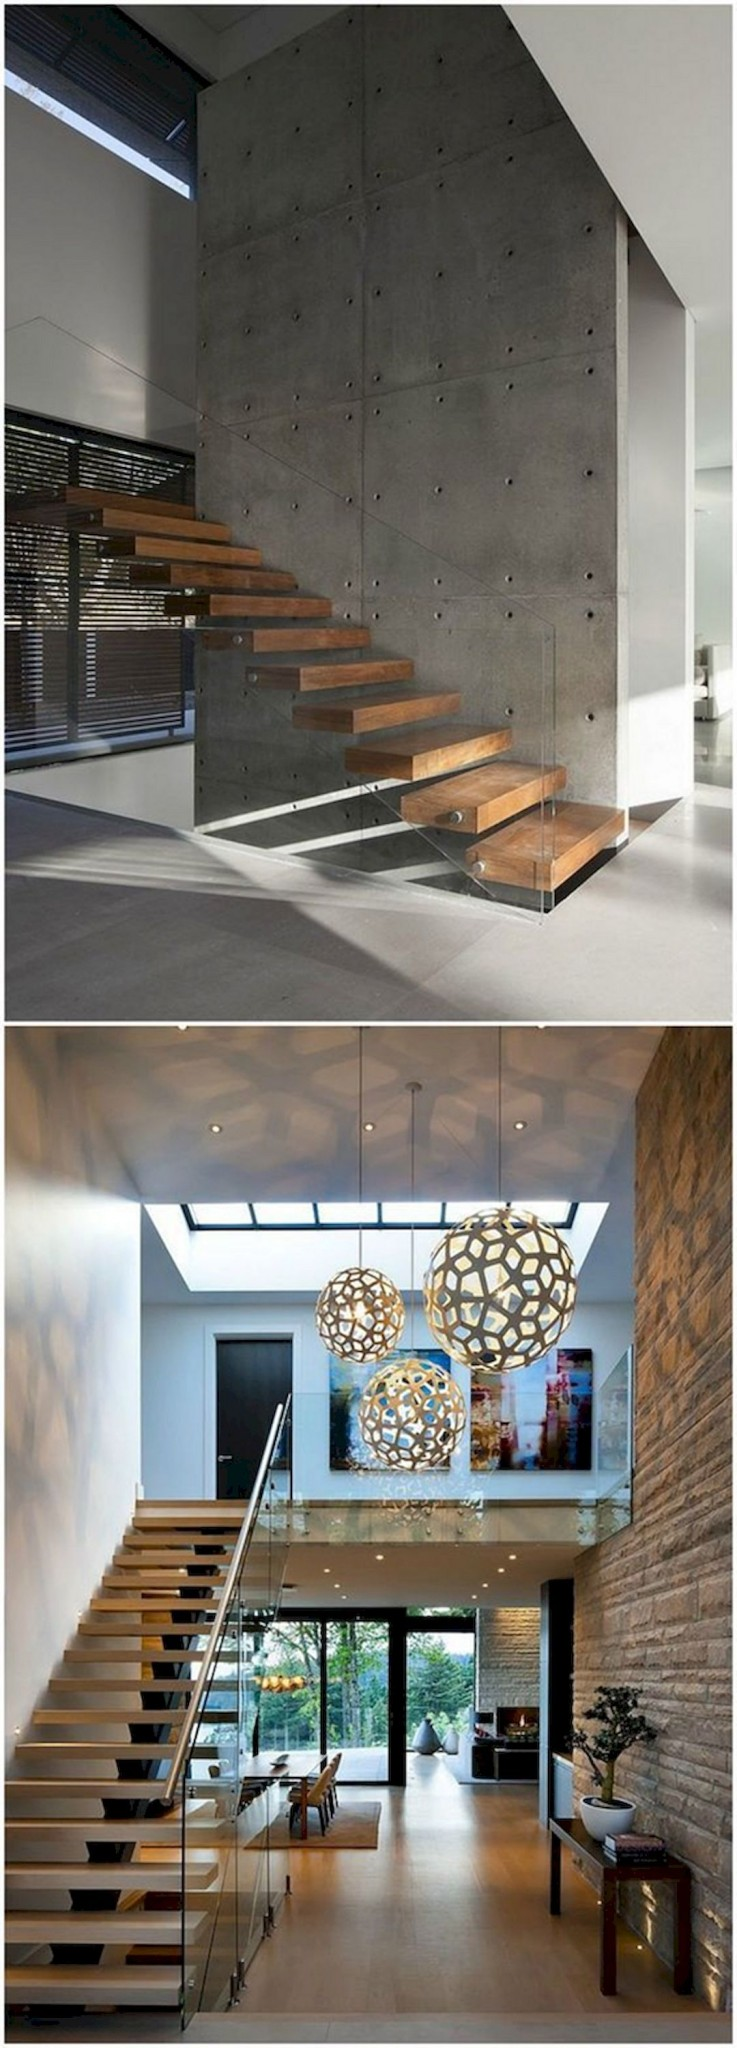 modern open space design with amazing staircase supported with clear glass railings